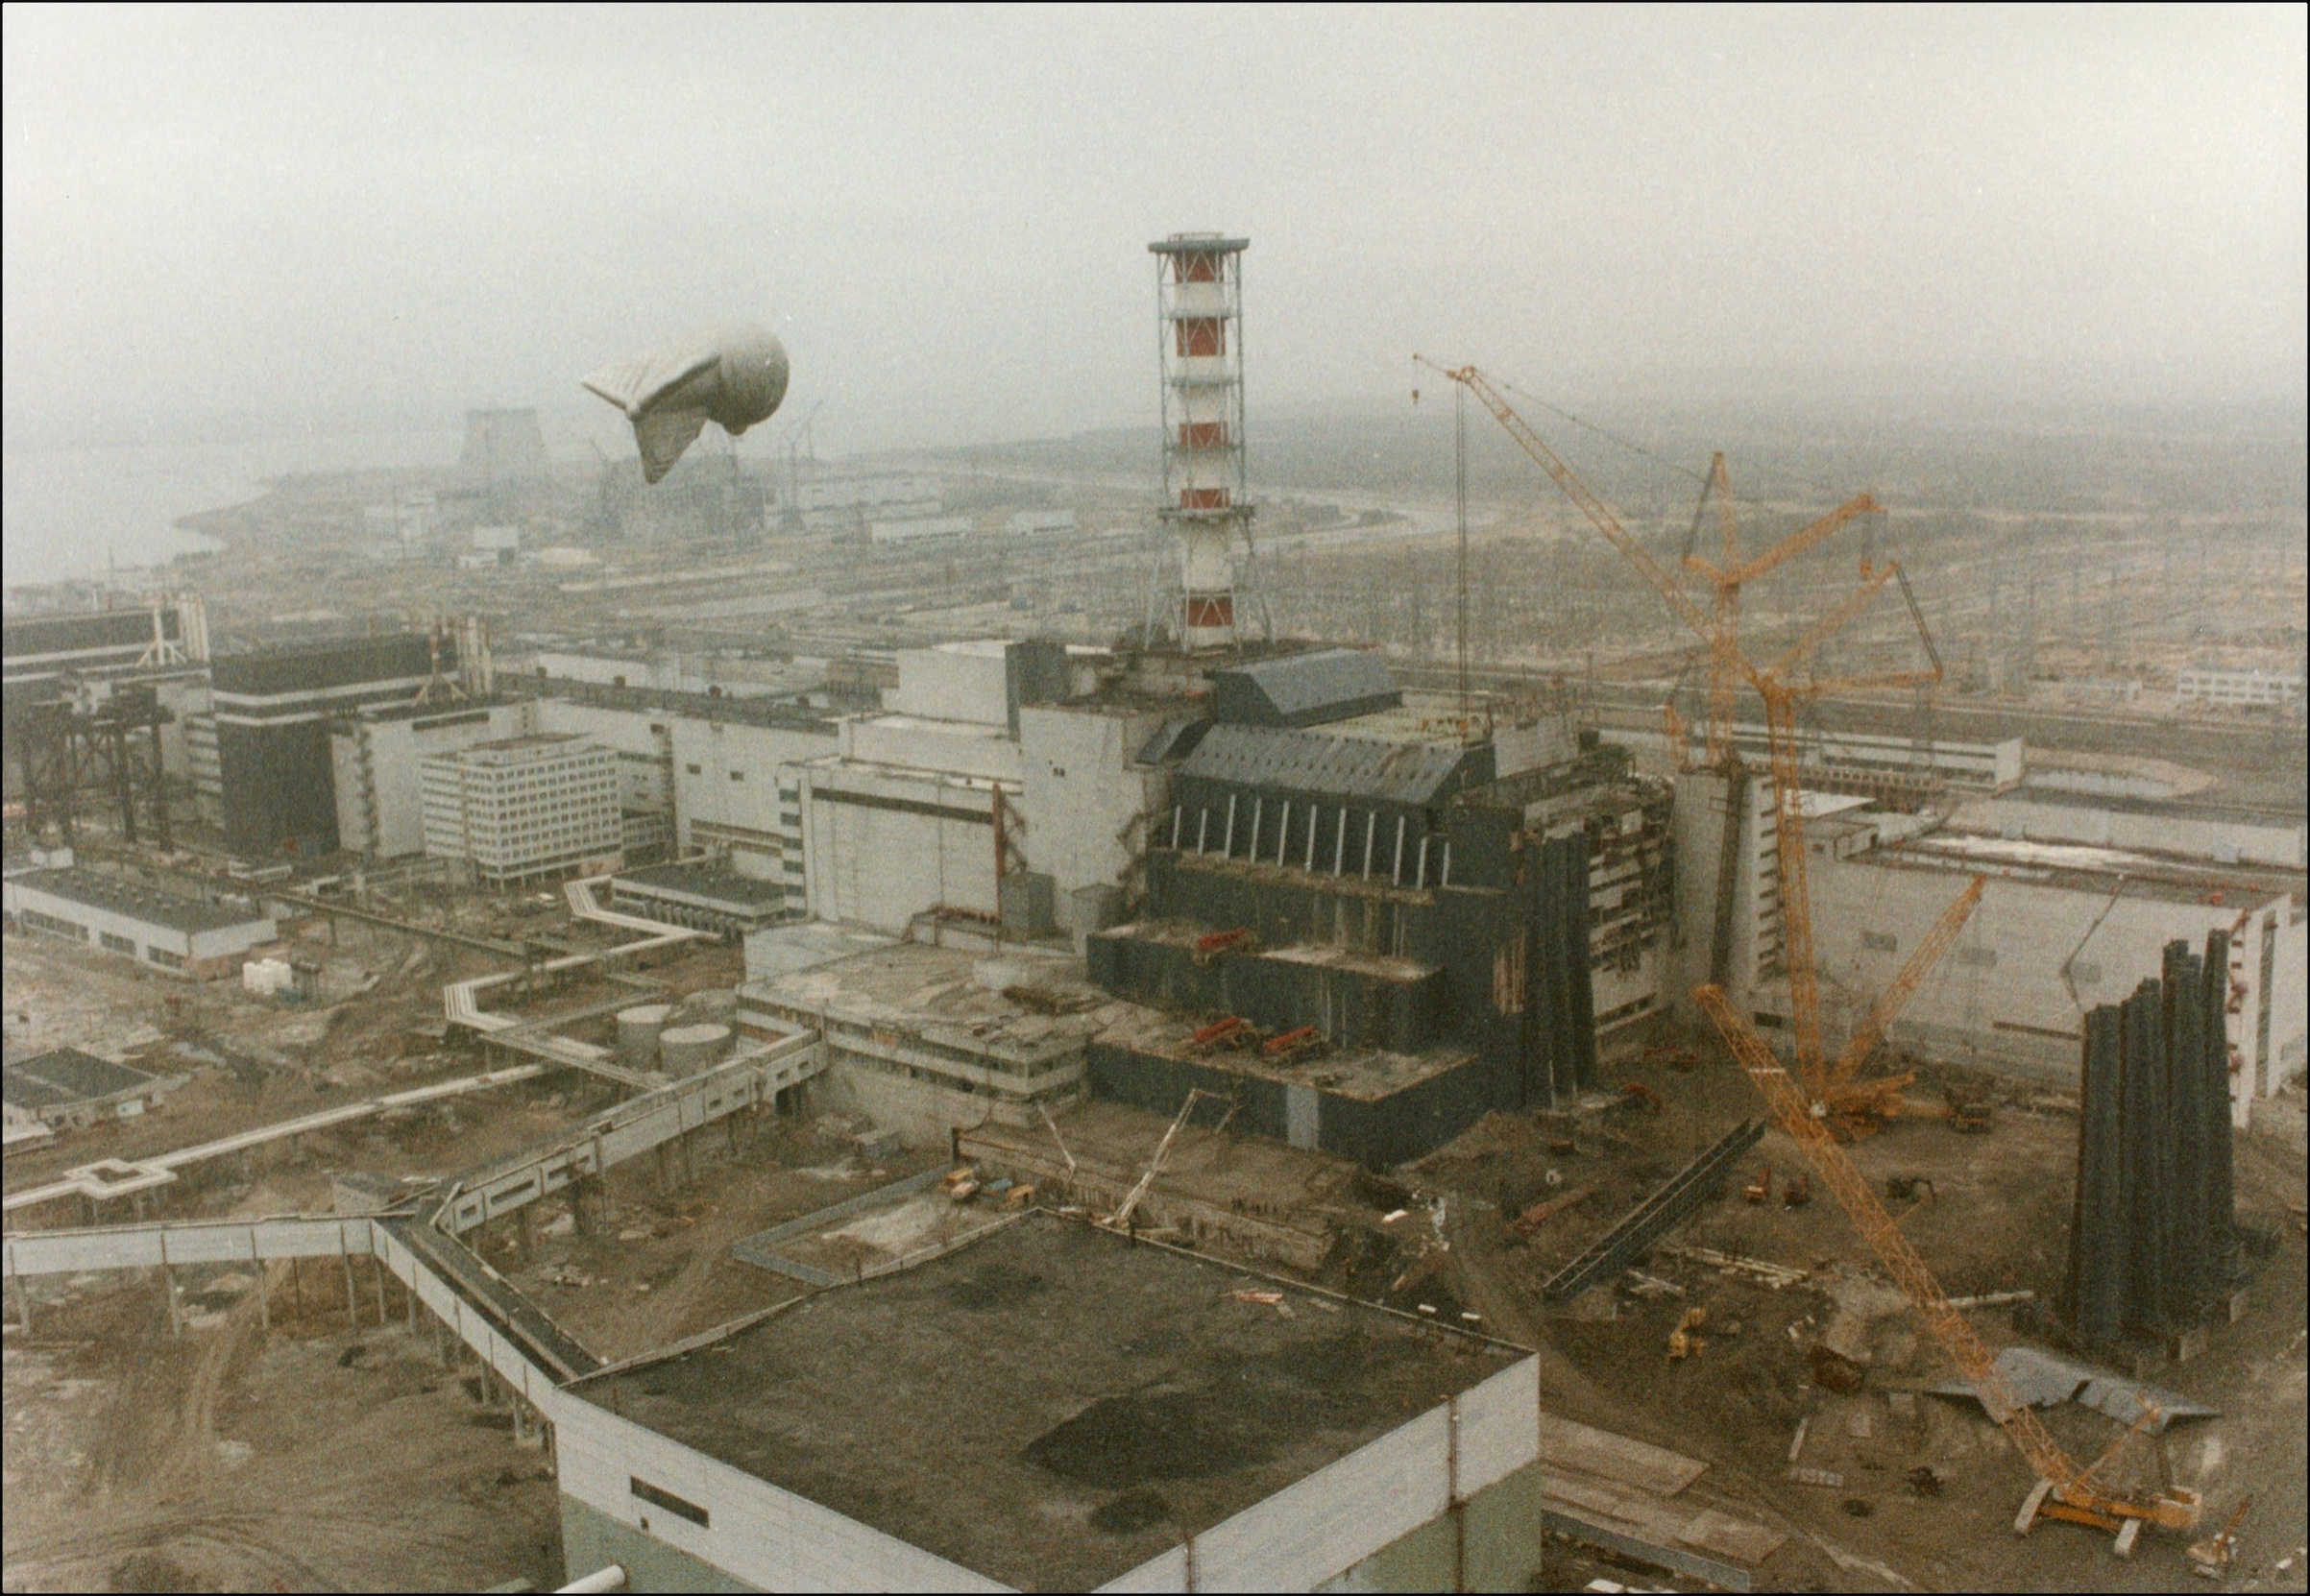 View of the Chernobyl Nuclear power after the explosion on April 26, 1986 in Chernobyl, Ukraine.